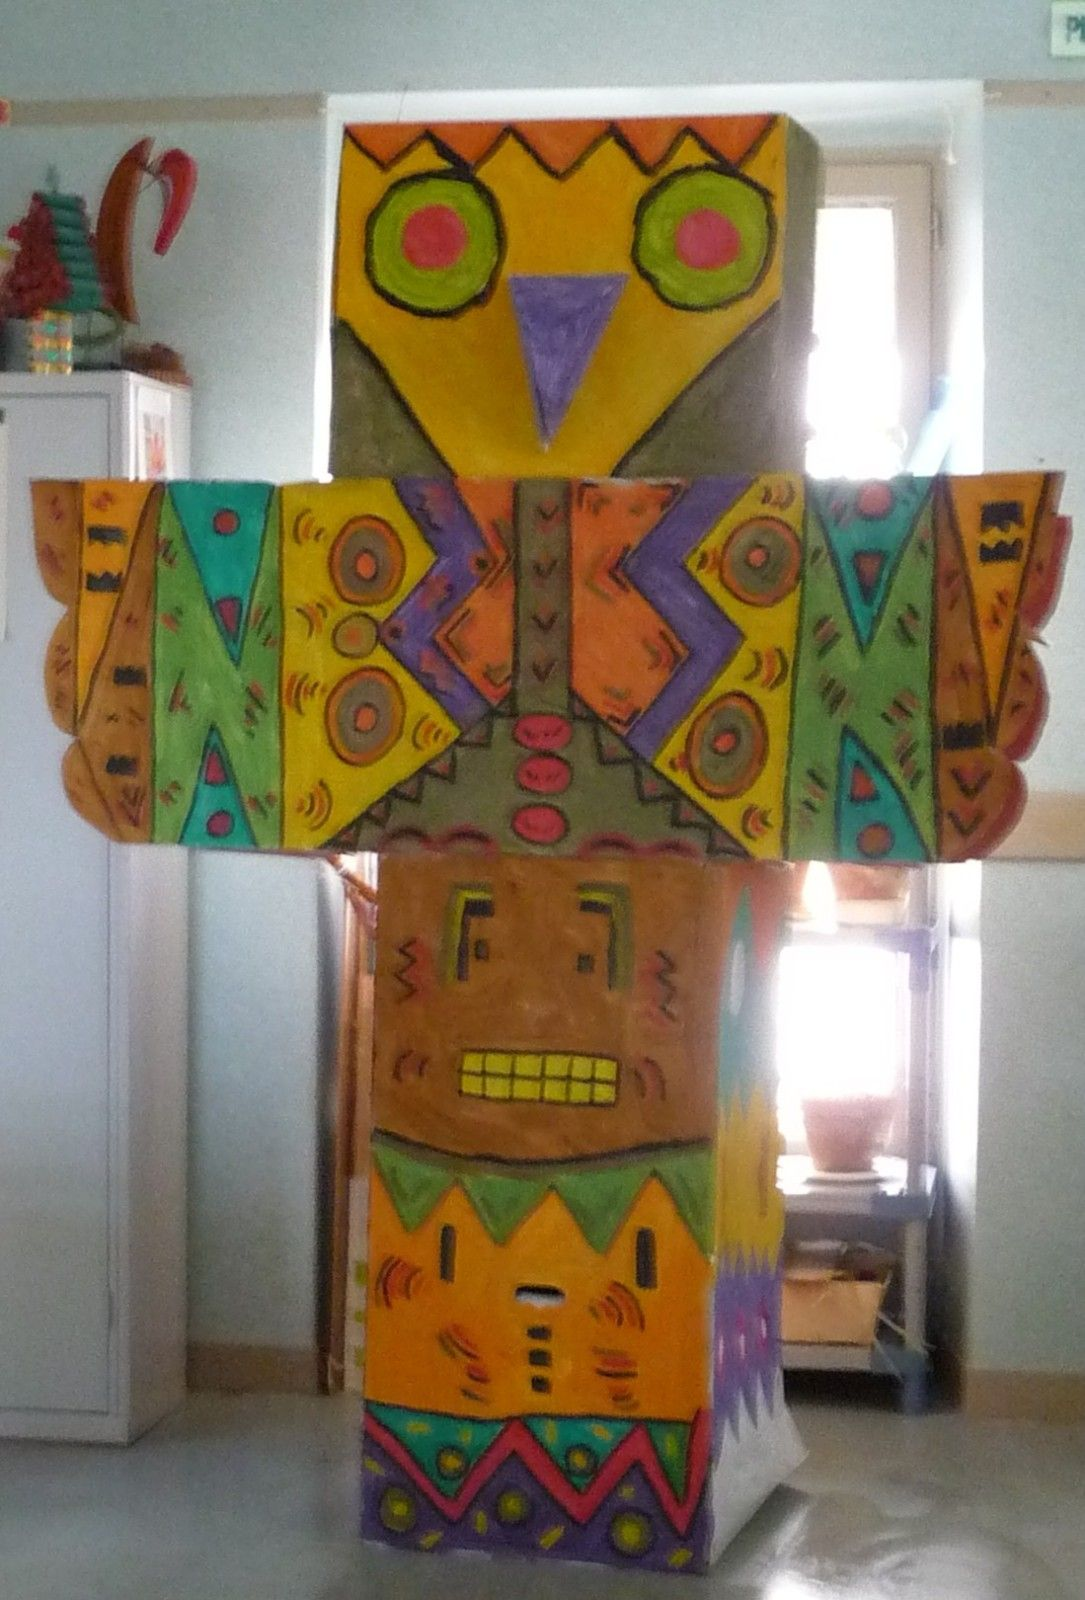 Bien connu totem poles Lesson idea: Who are the important people in your life  SK36